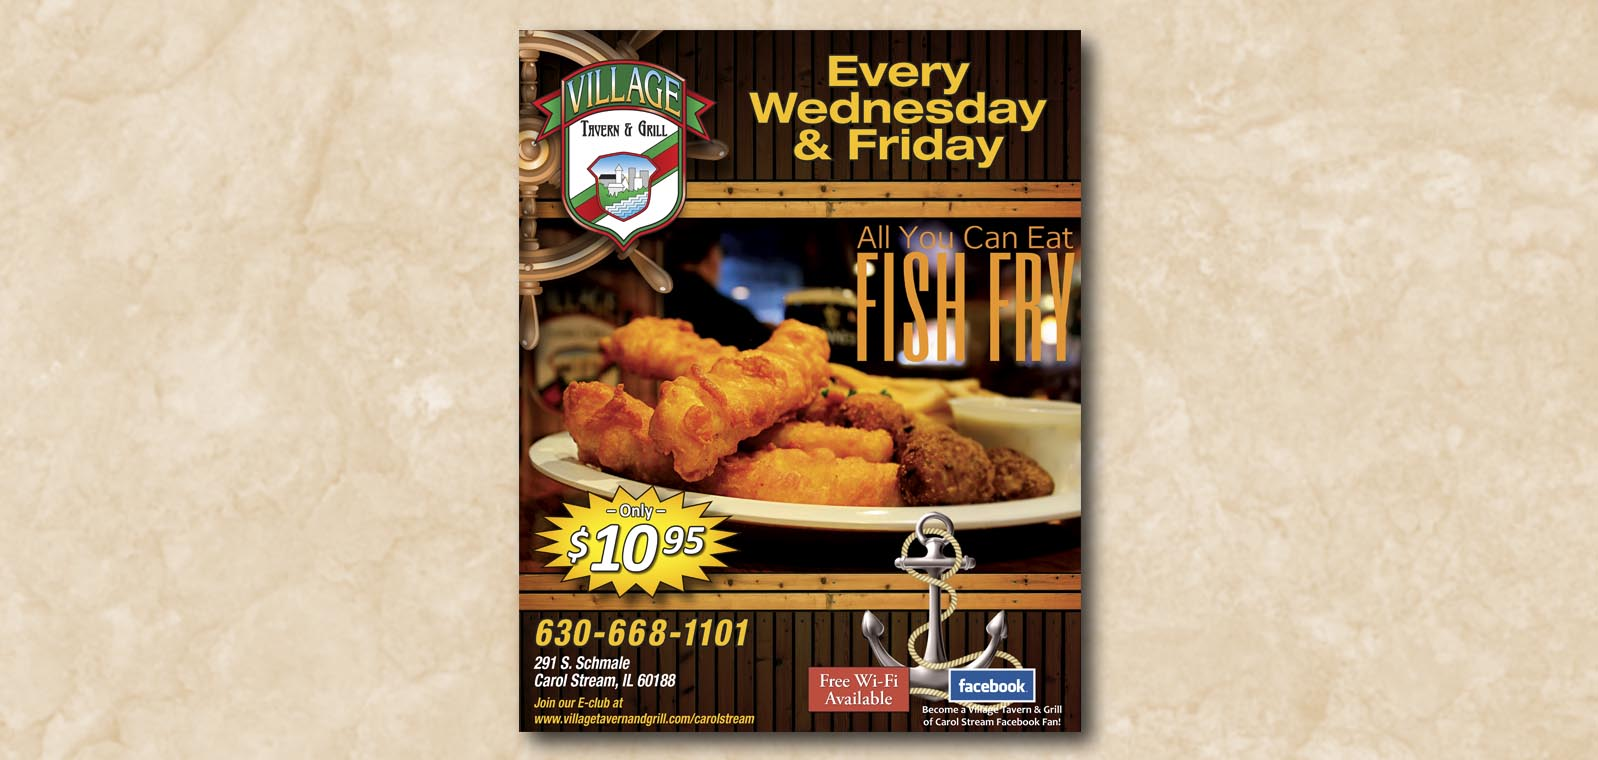 Signage Graphic Design for Village Tavern & Grill, by Roselle Graphic Designer Controlled Color, Inc.